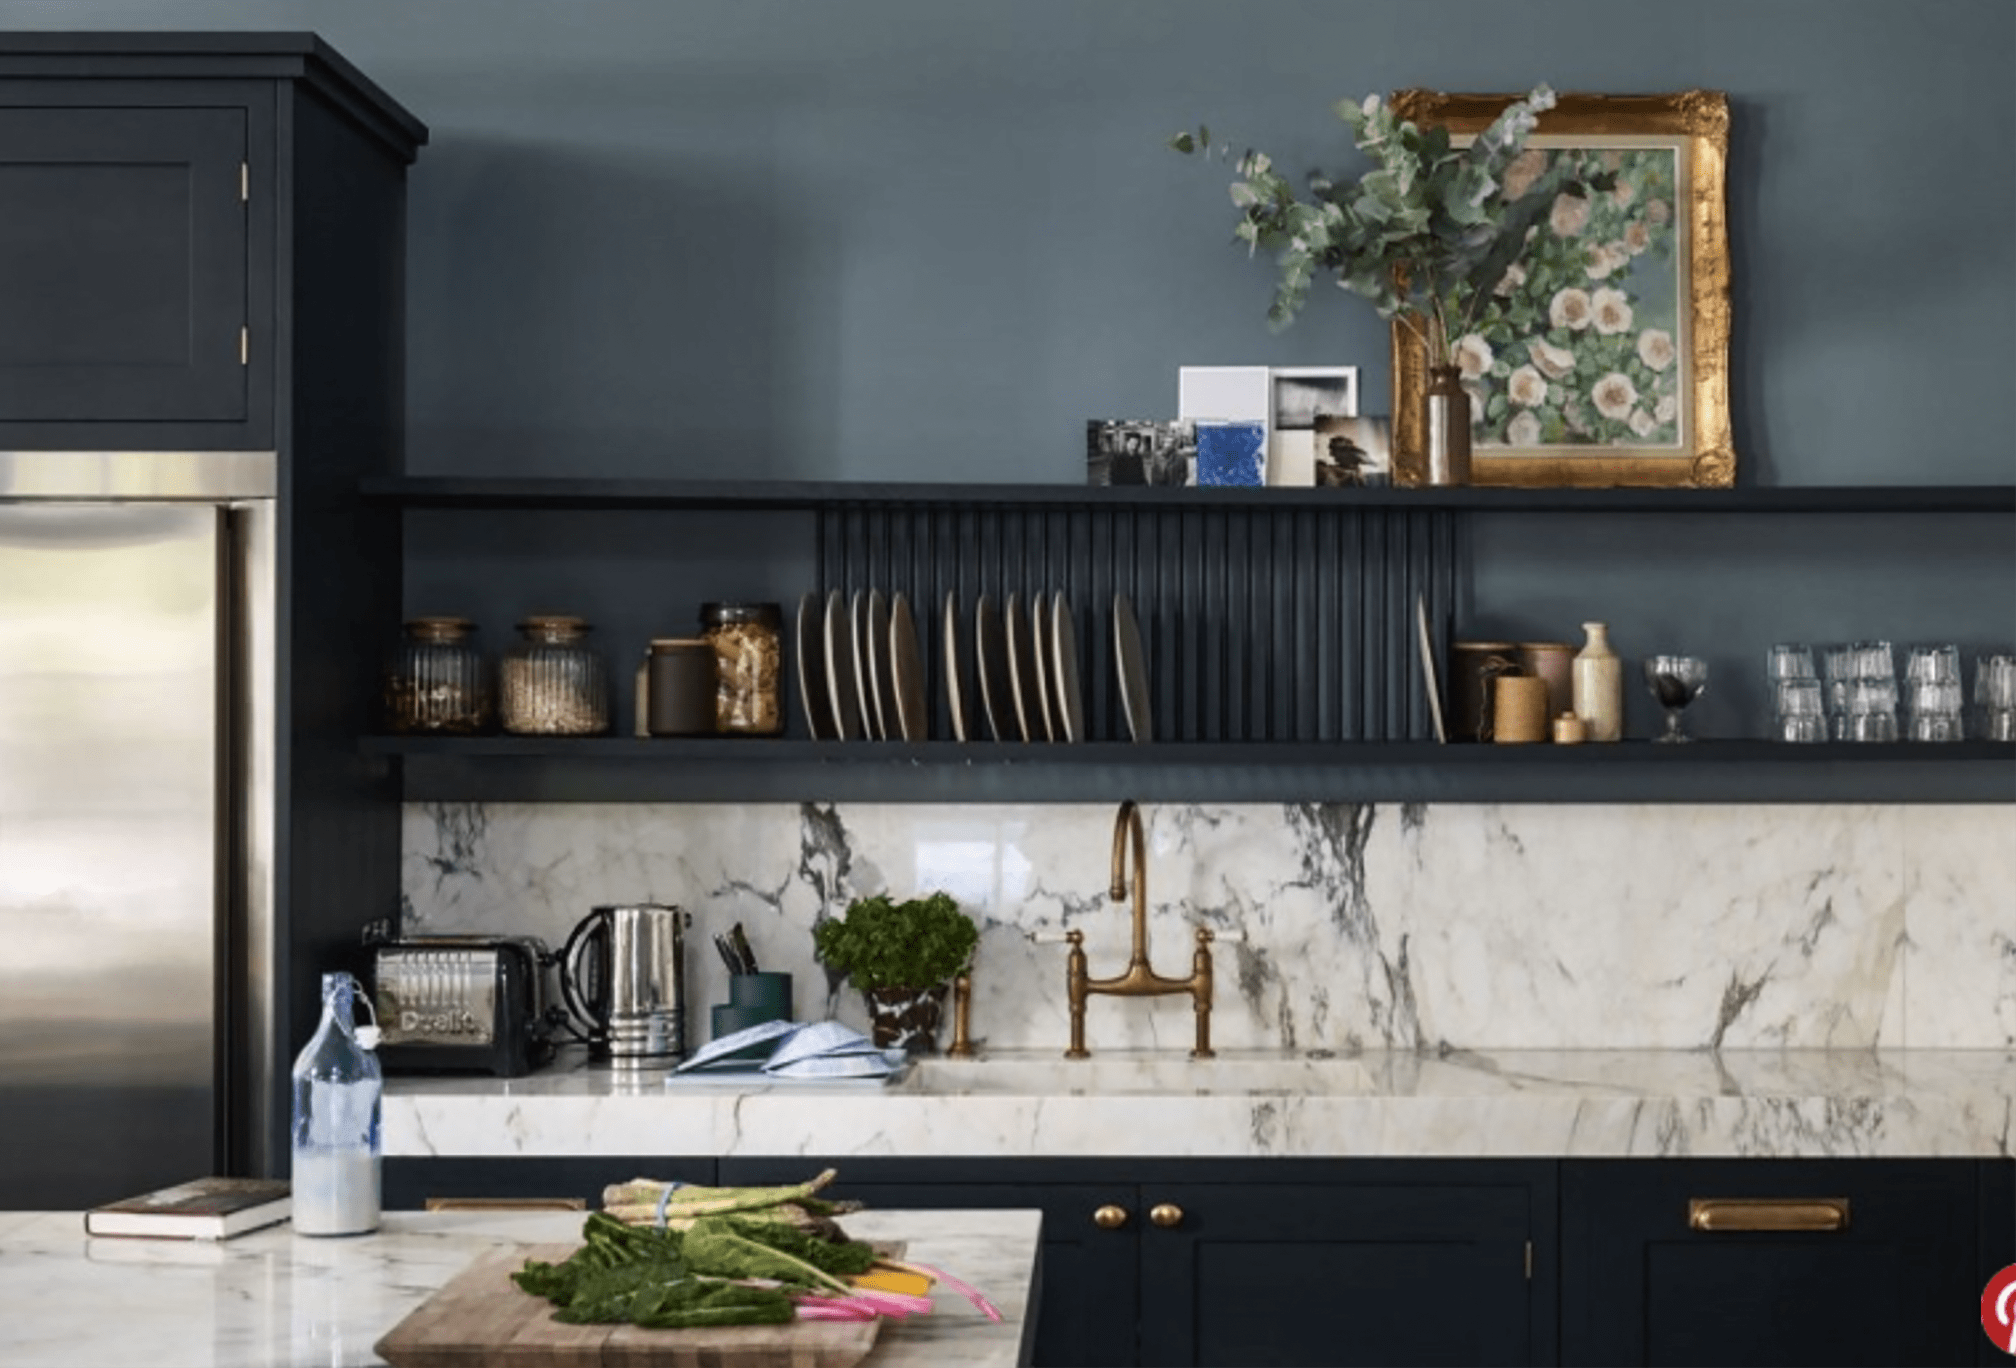 Farrow and Ball via Domino kitchen on Cindy Hattersley's blog